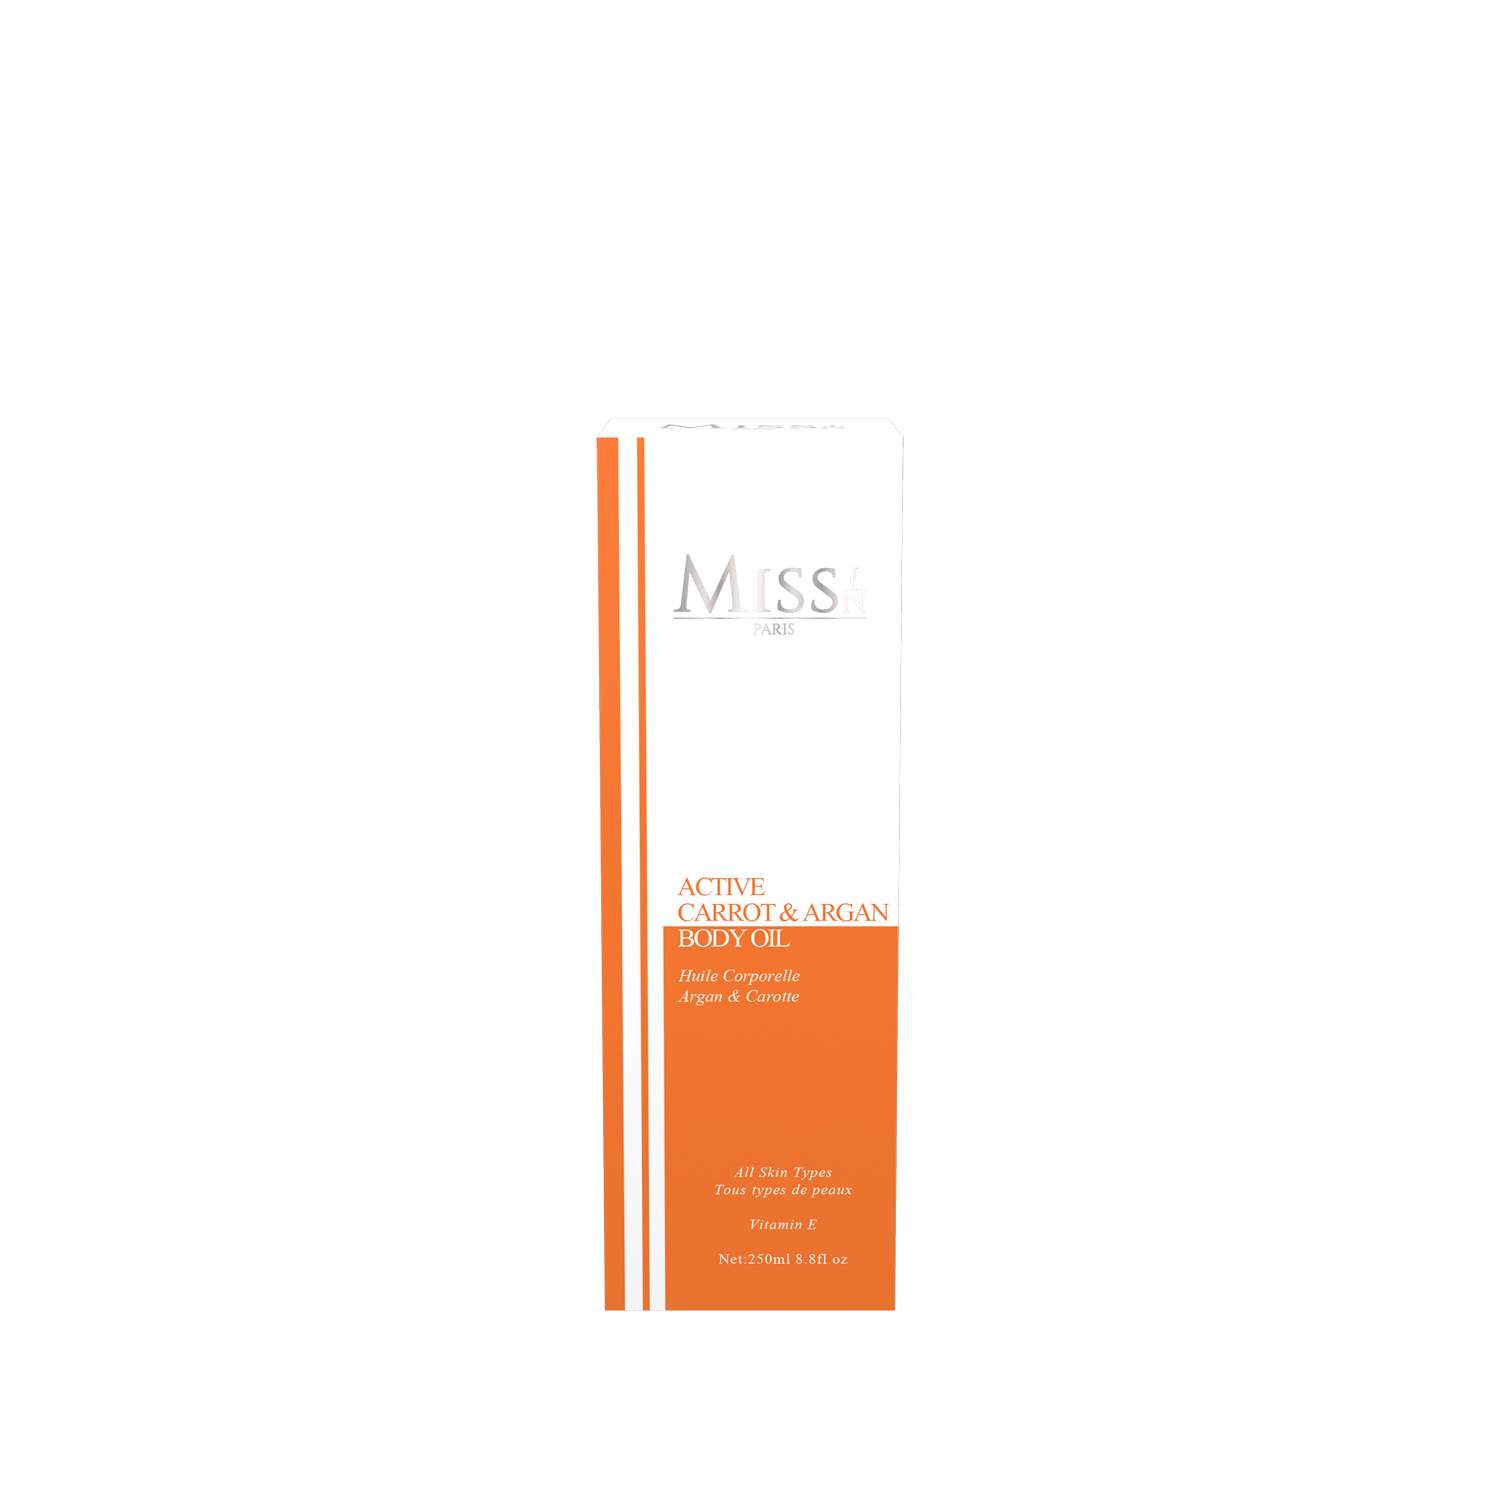 ACTIVE CARROT & ARGAN BODY OIL